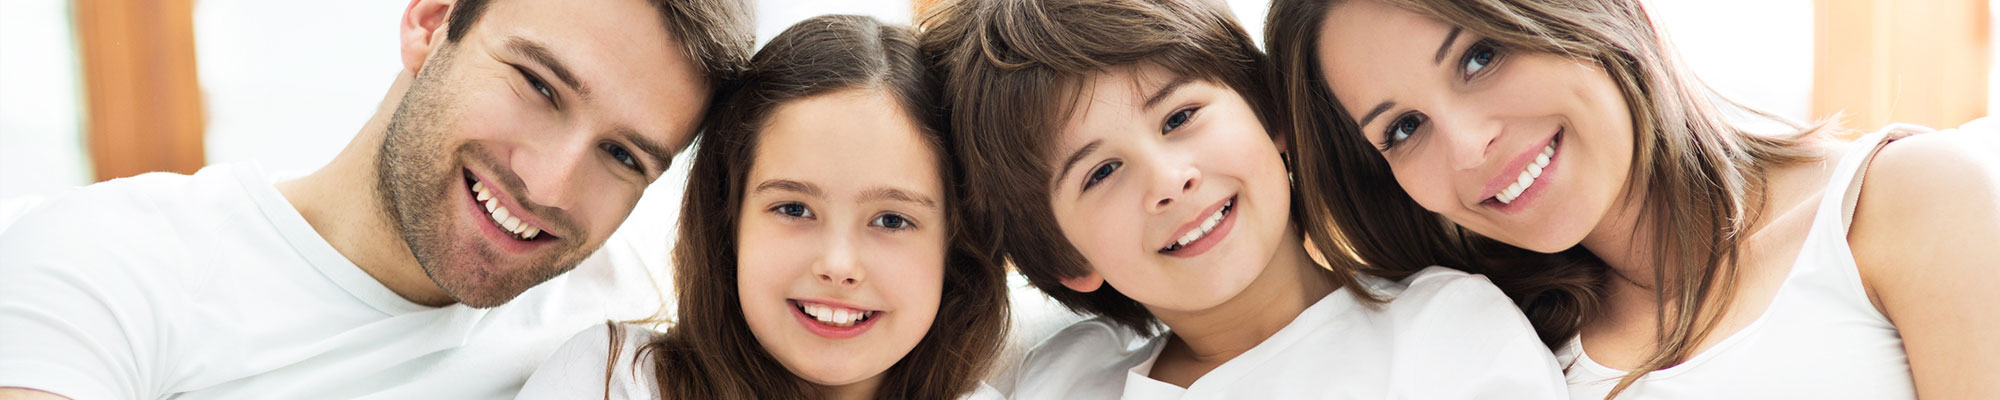 common orthodontic issues